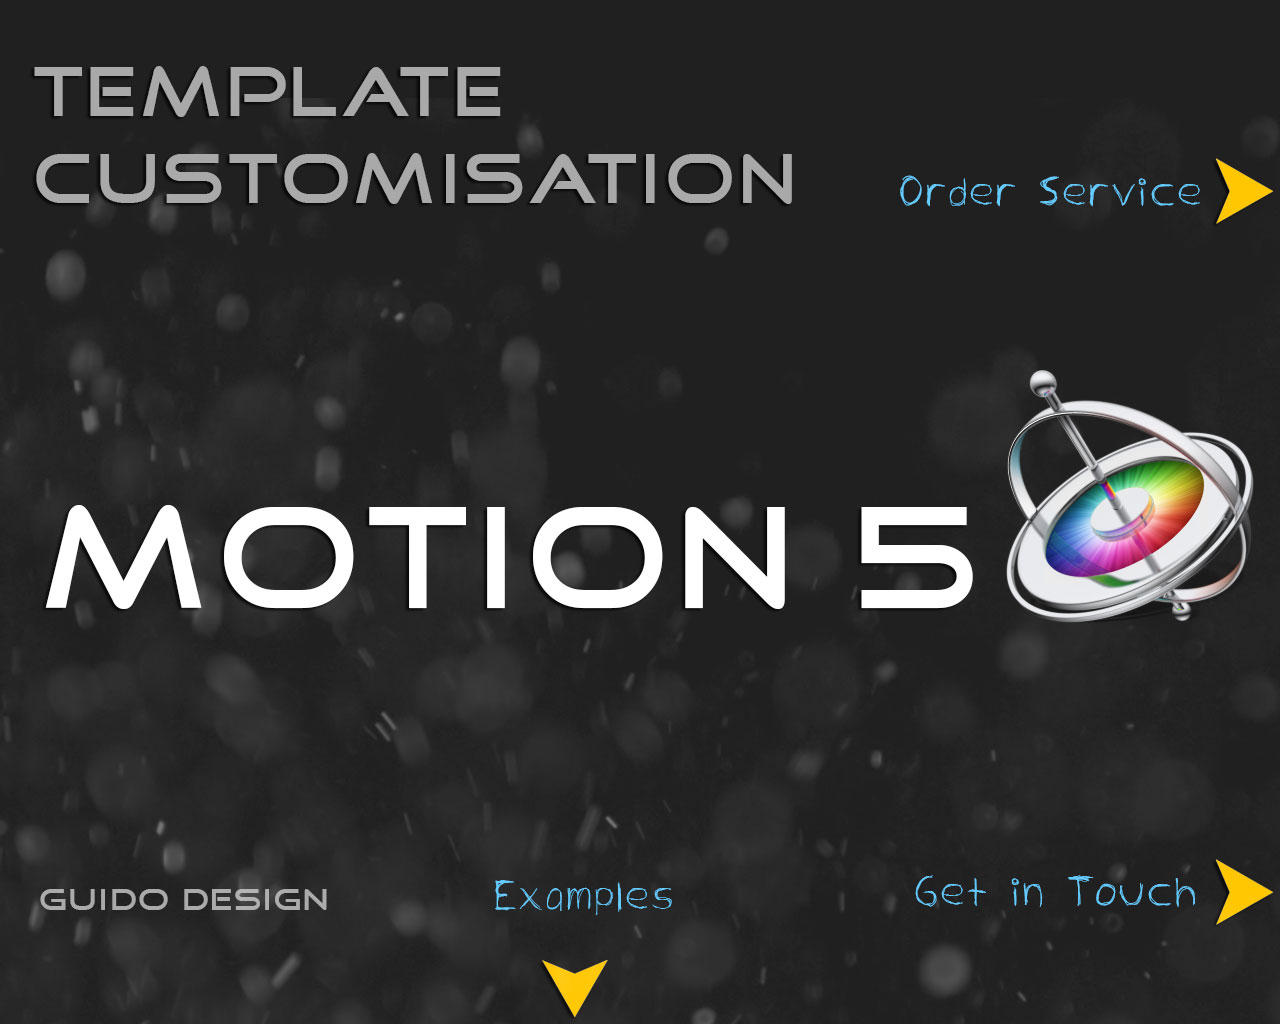 Professional Apple Motion 5 Customization Template by GuidoDesign - 64202